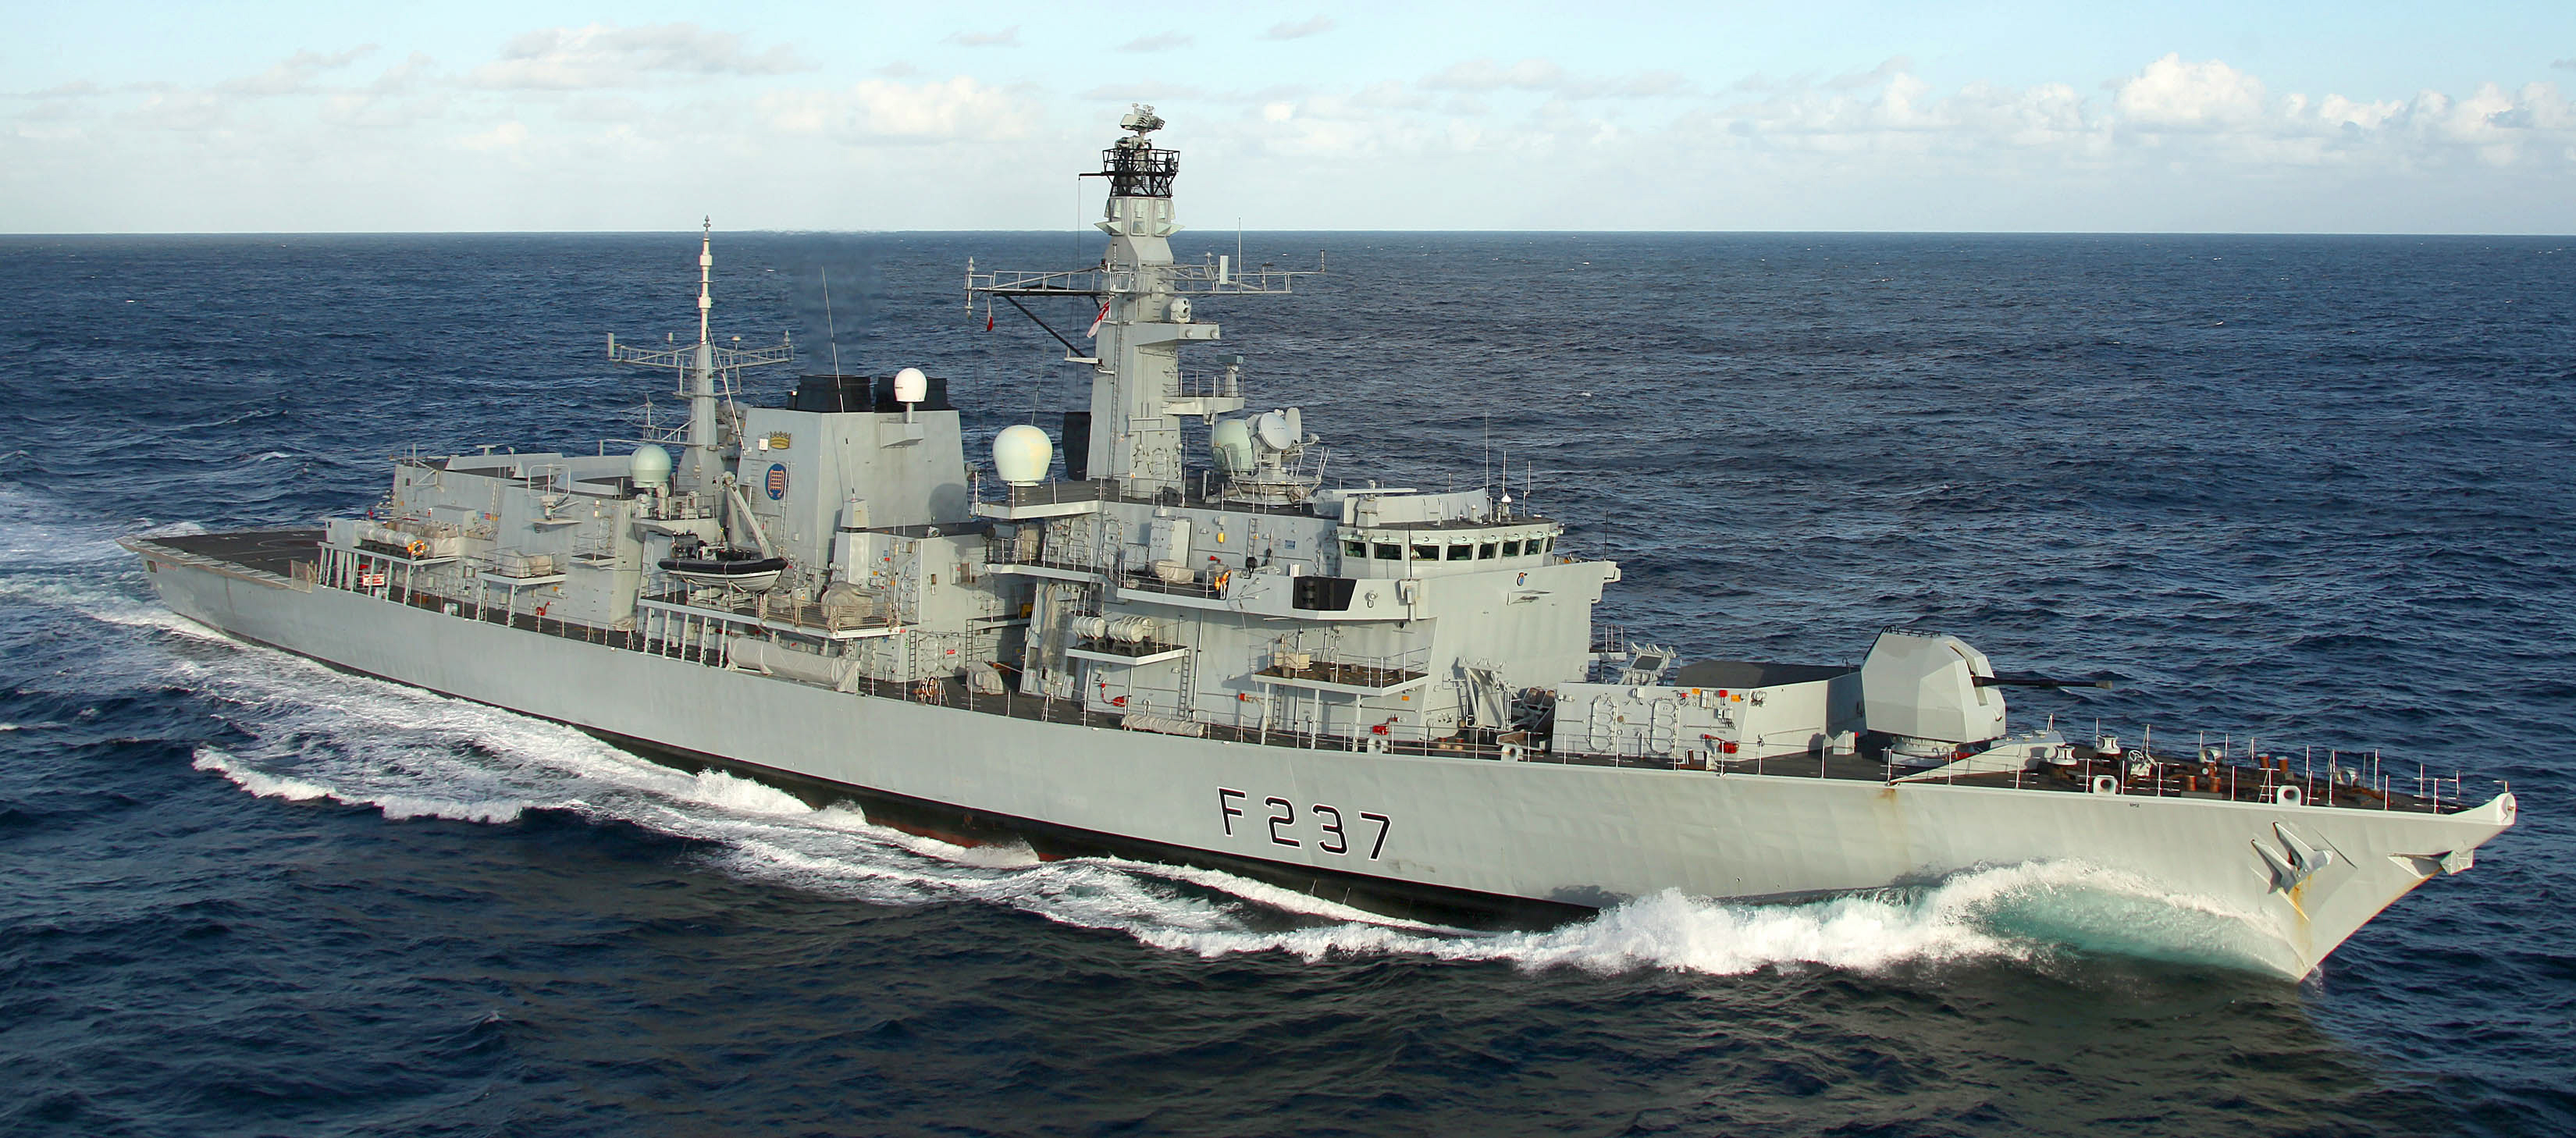 http://upload.wikimedia.org/wikipedia/commons/2/28/HMS_Westminster_Enroute_to_Libya_to_Aid_in_the_Humanitarian_Effort_MOD_45152530.jpg